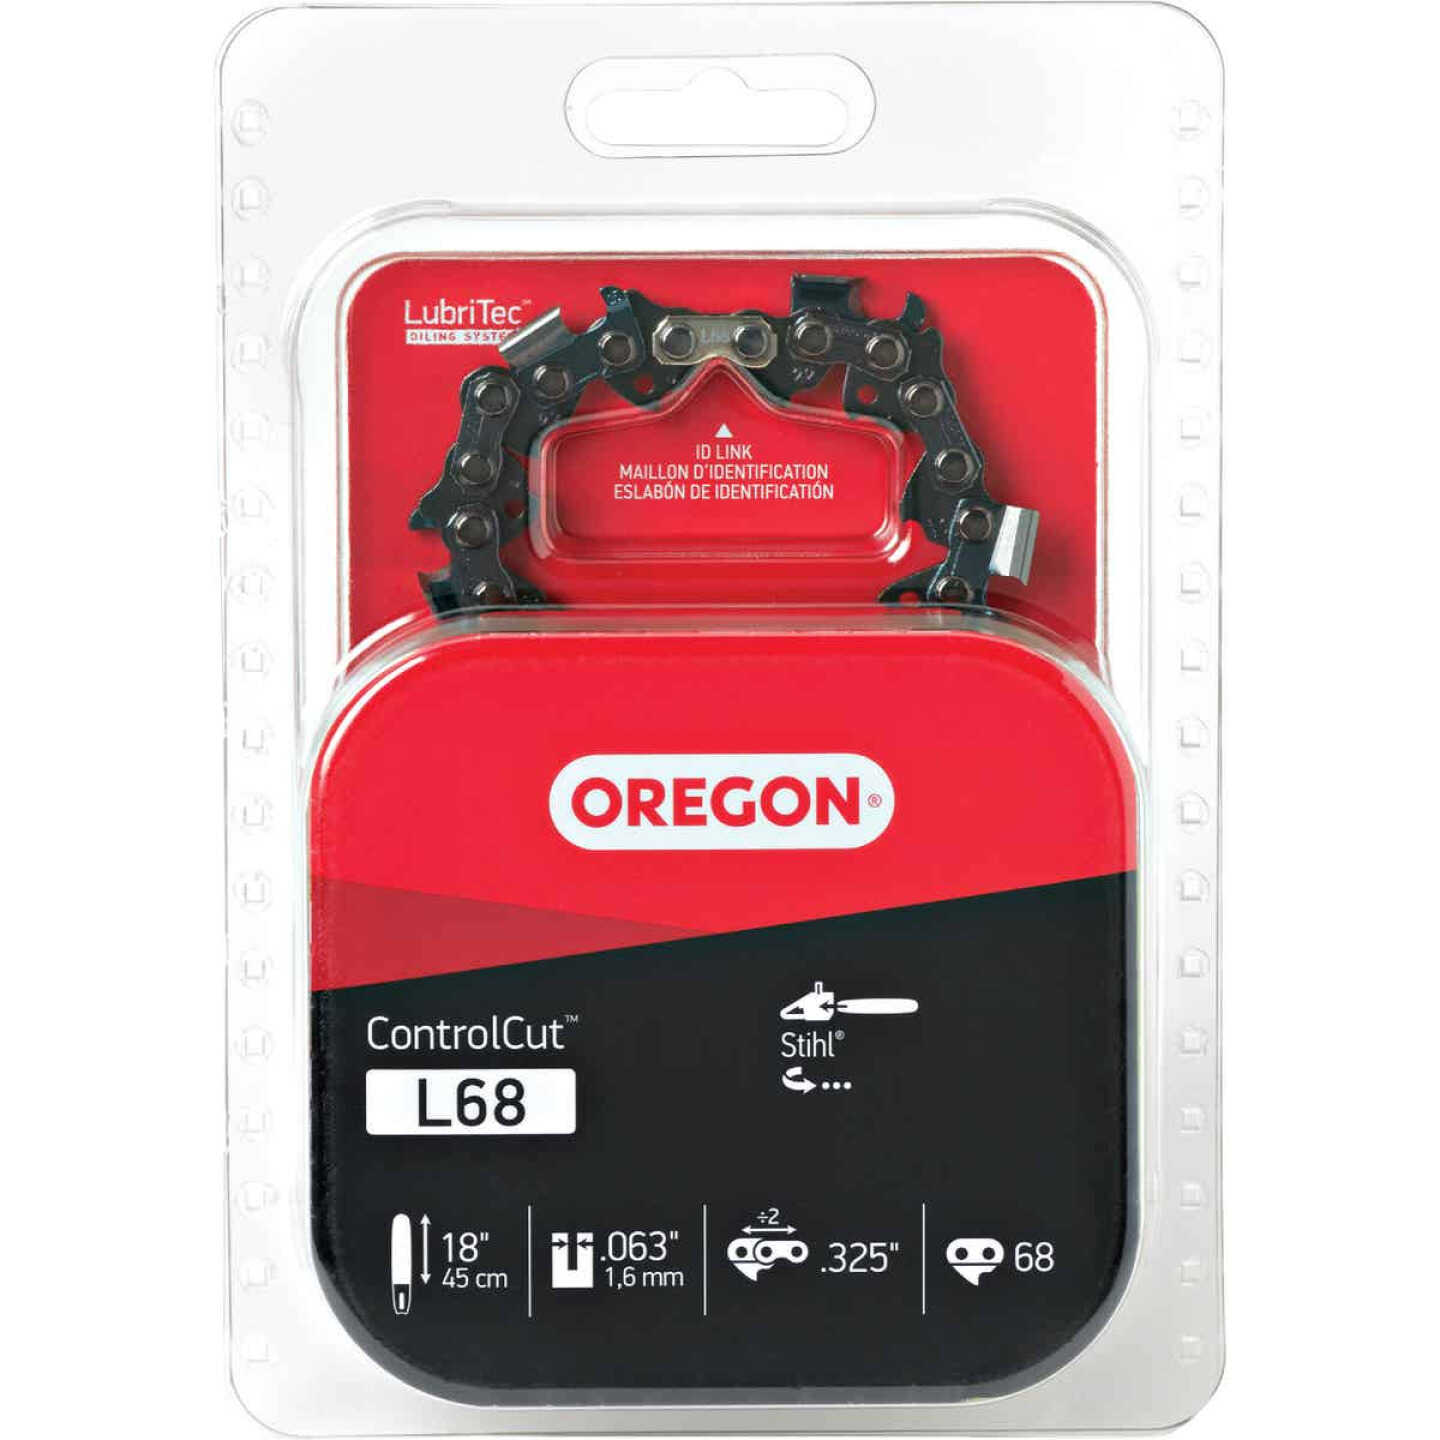 Oregon ControlCut L68 18 In. 0.325 In. 68 Link Saw Chain Image 2